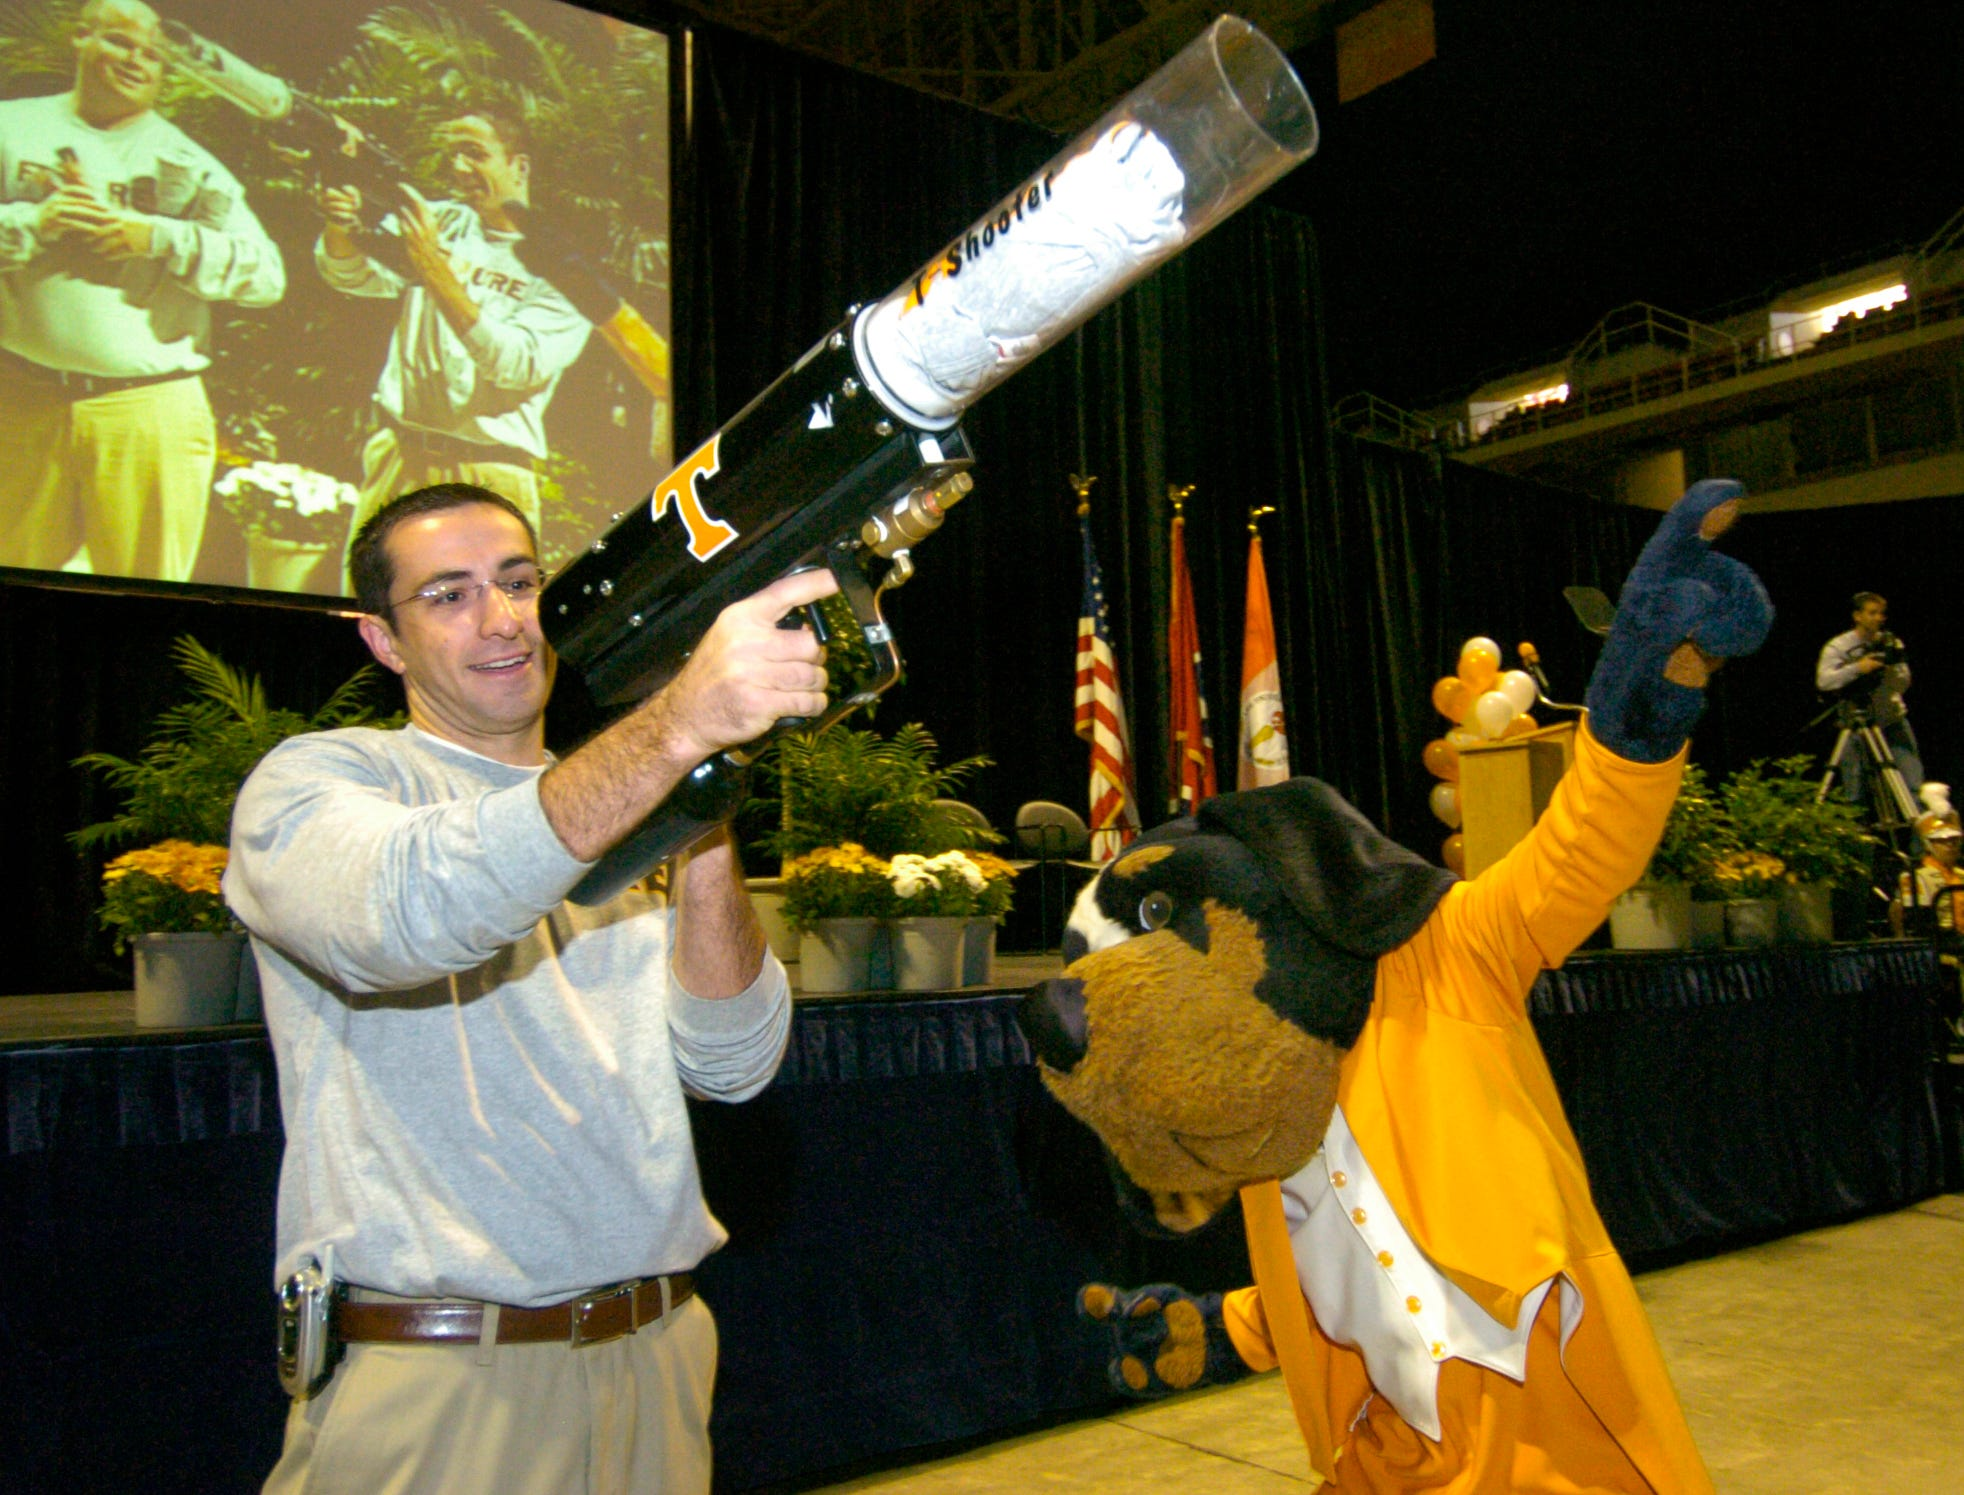 UT student Jimmy Delaney, left, waits for his gun to re-charge to launch another logo t-shirt into the crowd gathered to hear UT President John Petersen addressed all campuses via videolink from Thompson-Boling Arena Tuesday morning. Delaney along with Smokey were on hand to get the crowd of UT employees excited before the announcement of   a new marketing and branding initiative.